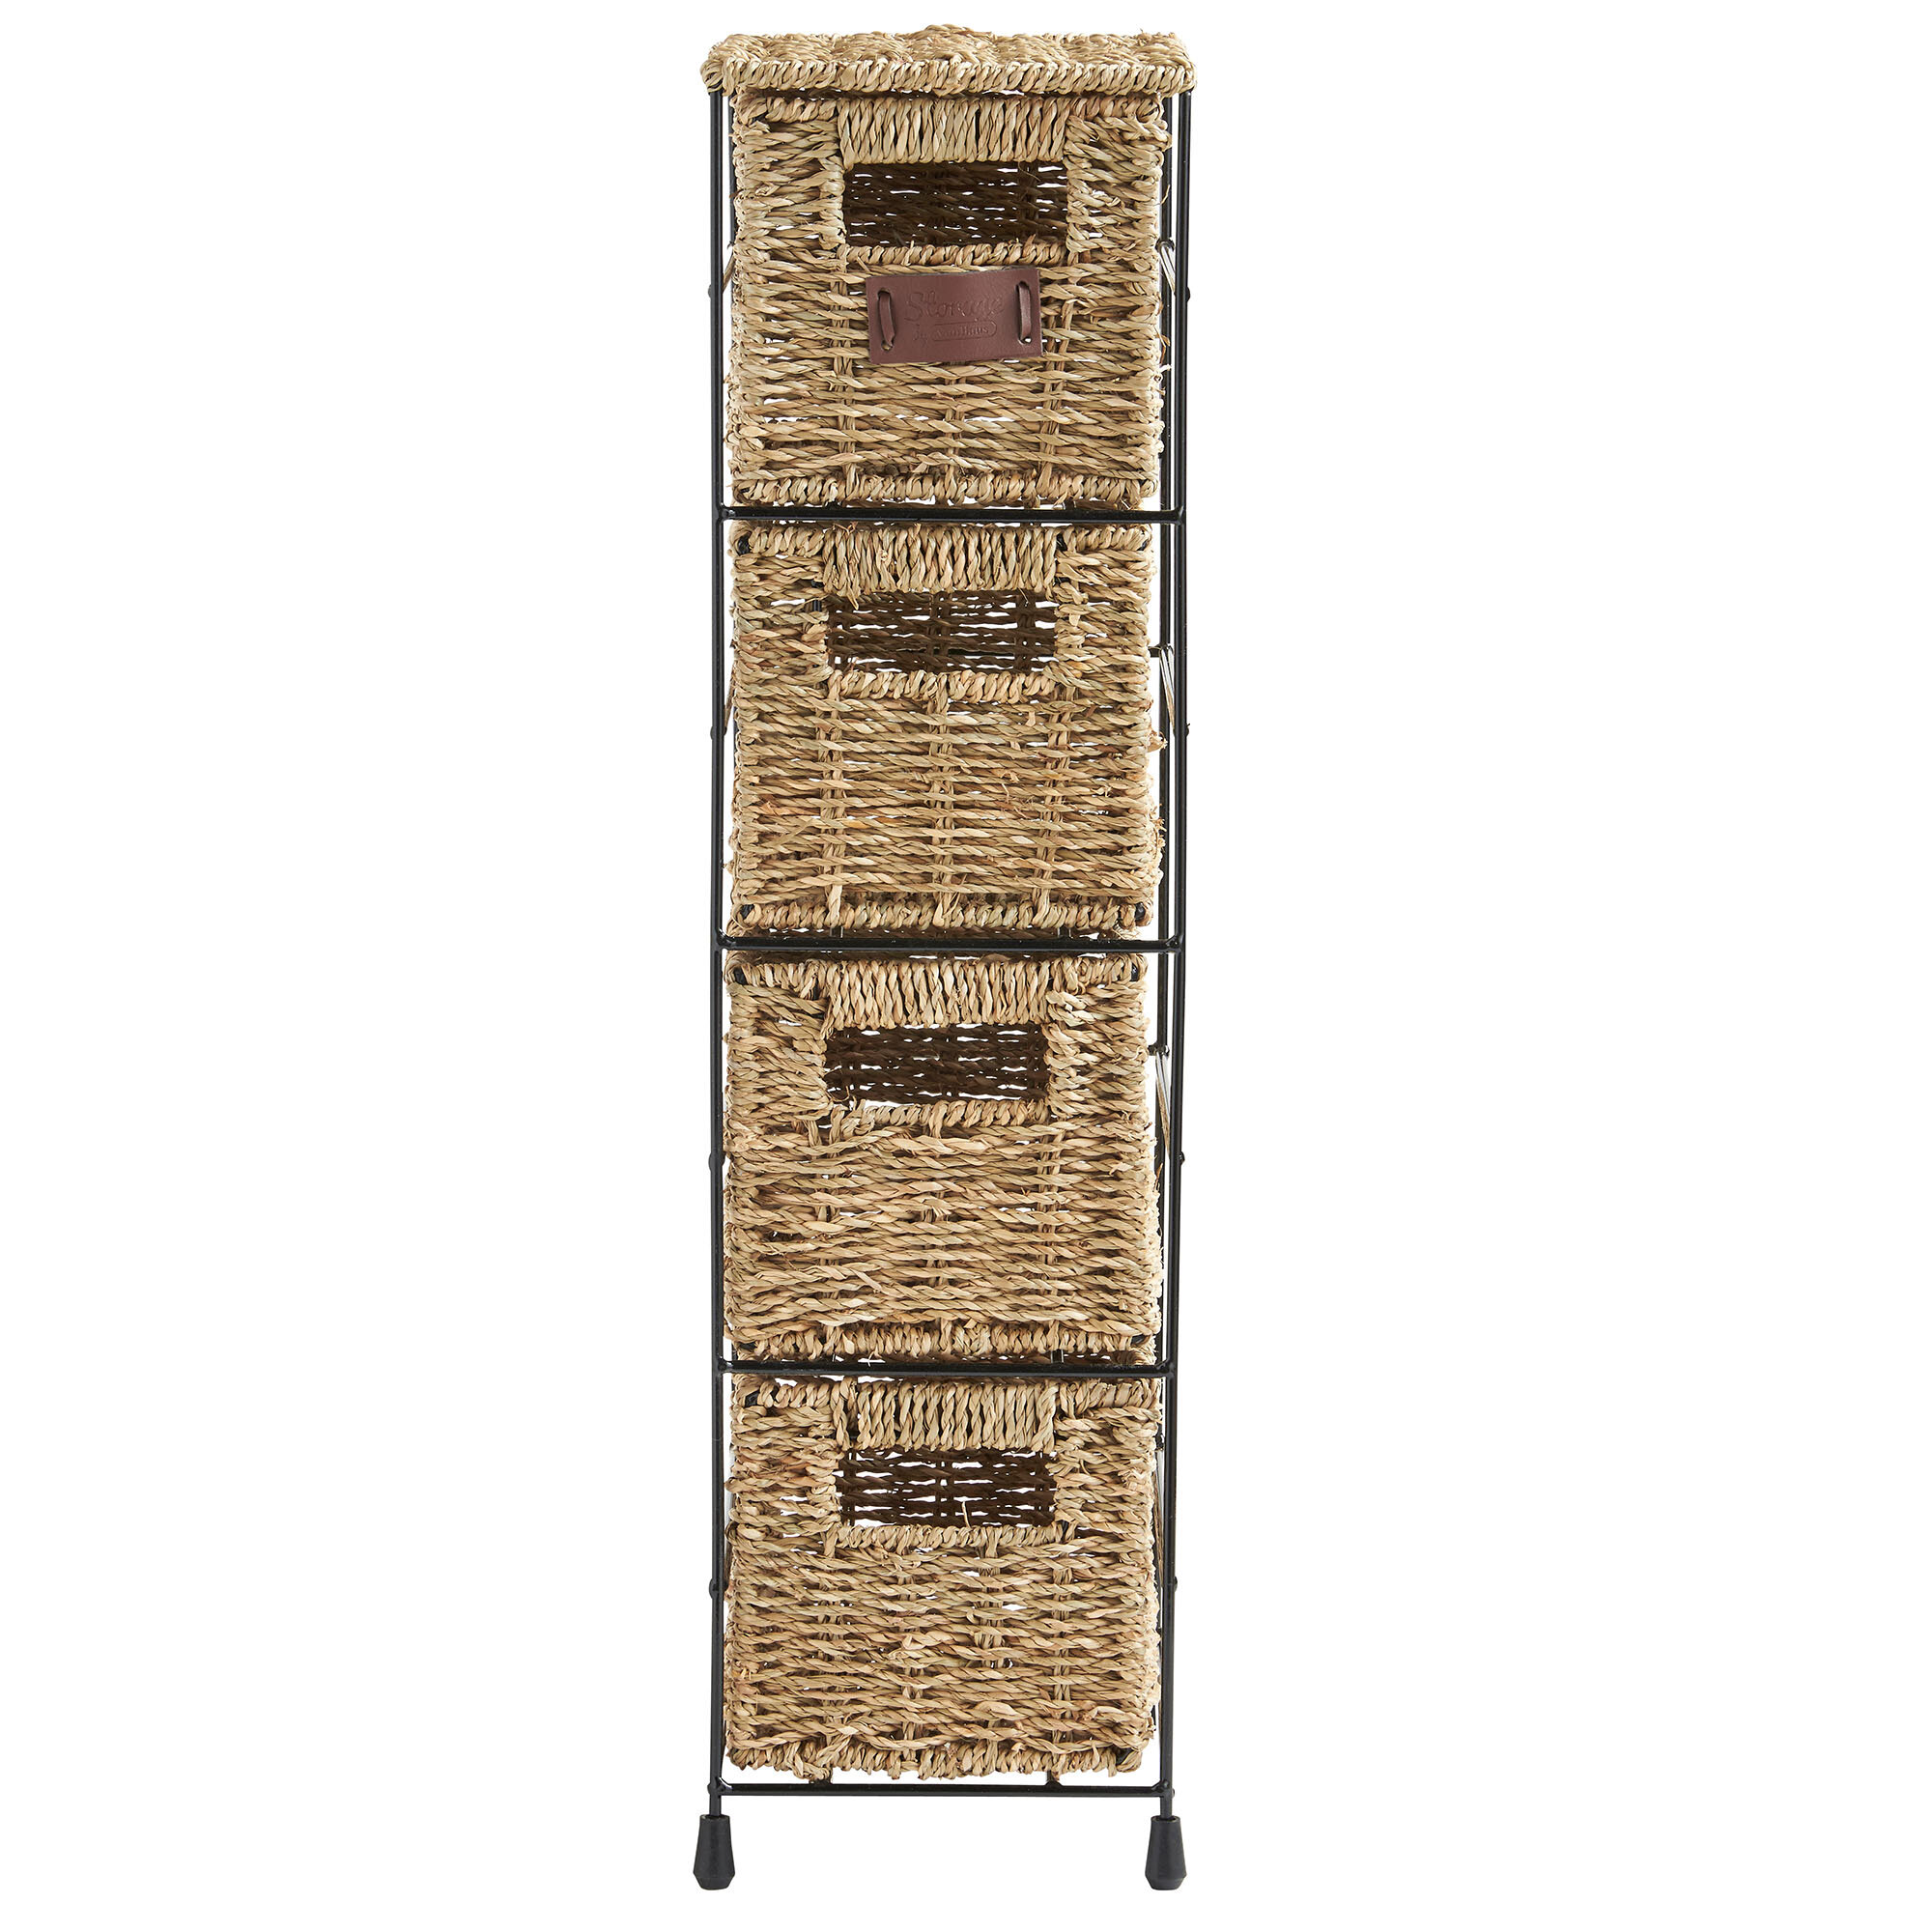 Brand new VonHaus 4 Tier Seagrass Storage Basket Tower Unit & Reviews | Wayfair JP17